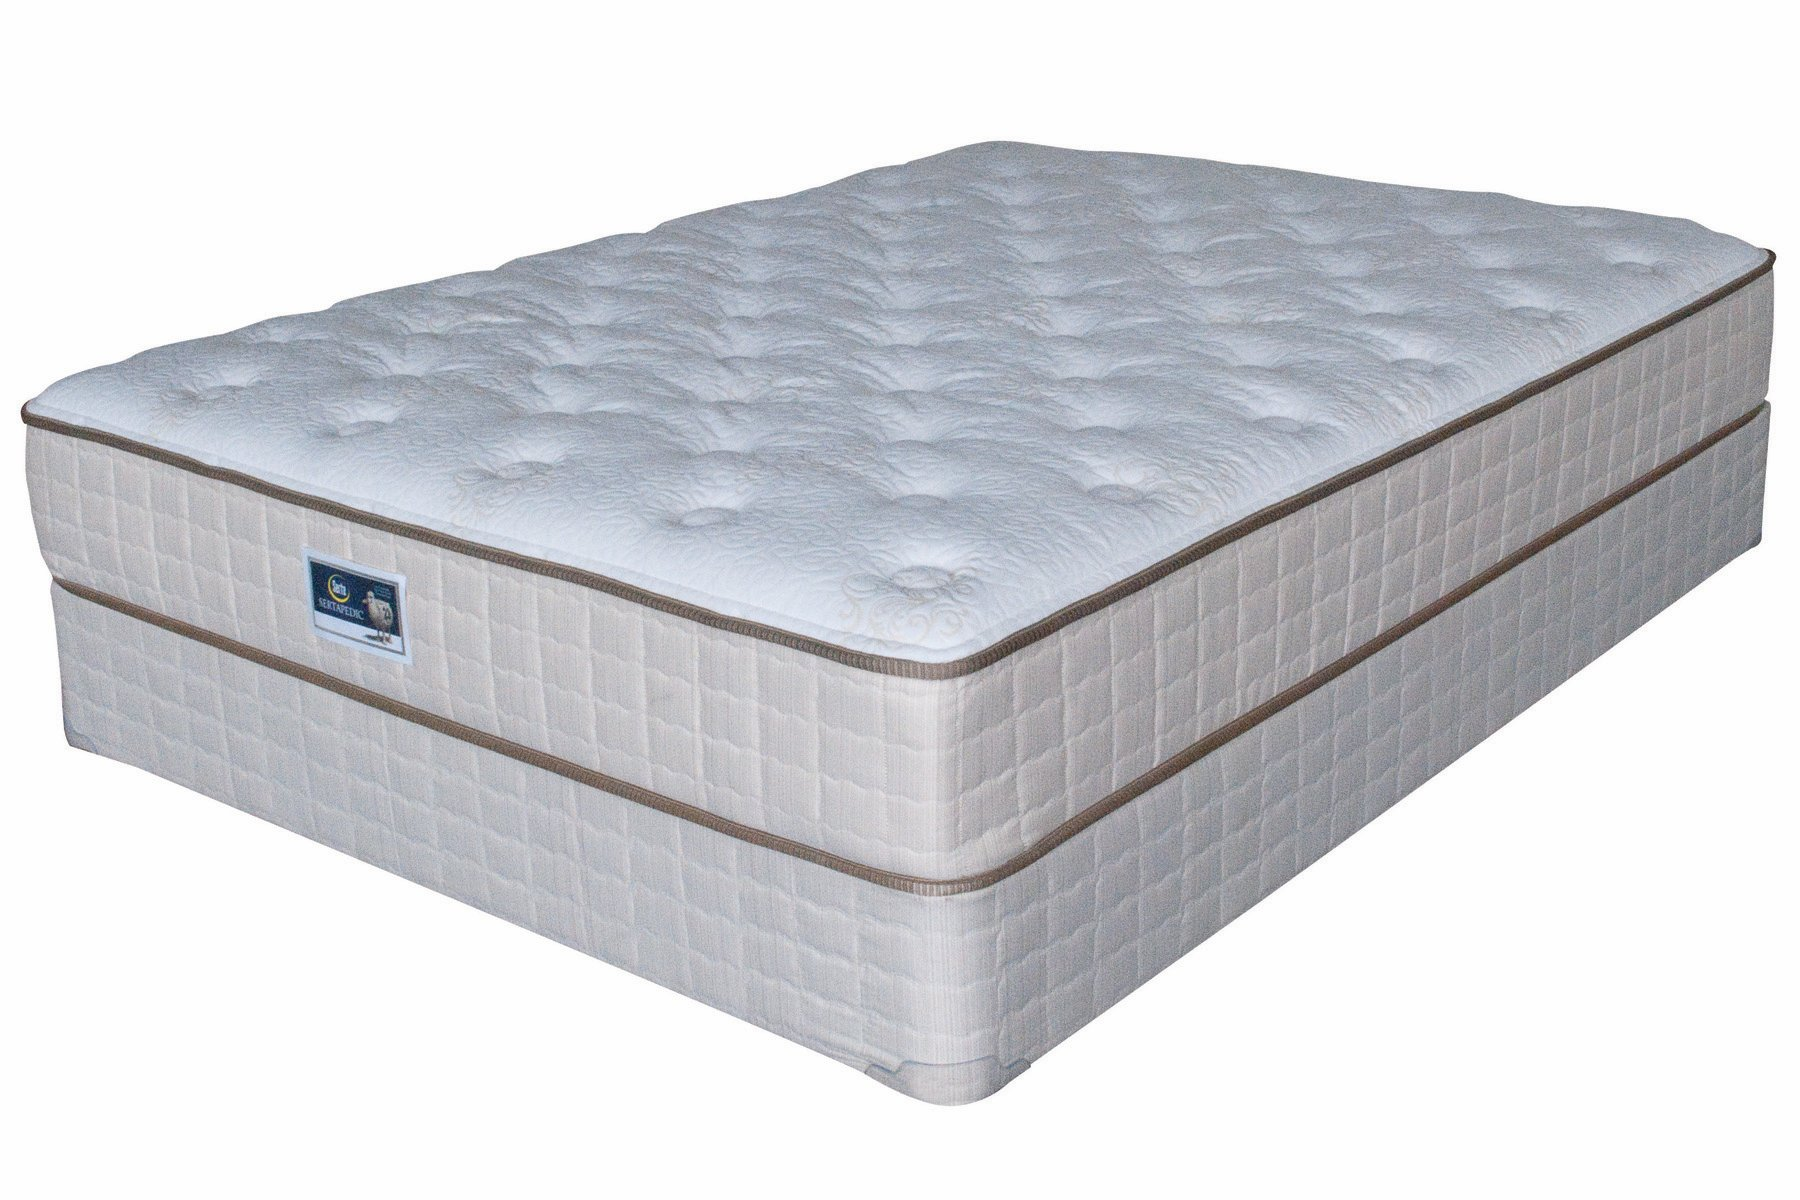 Sertapedic Grandbury Plush - Mattress Reviews | GoodBed.com